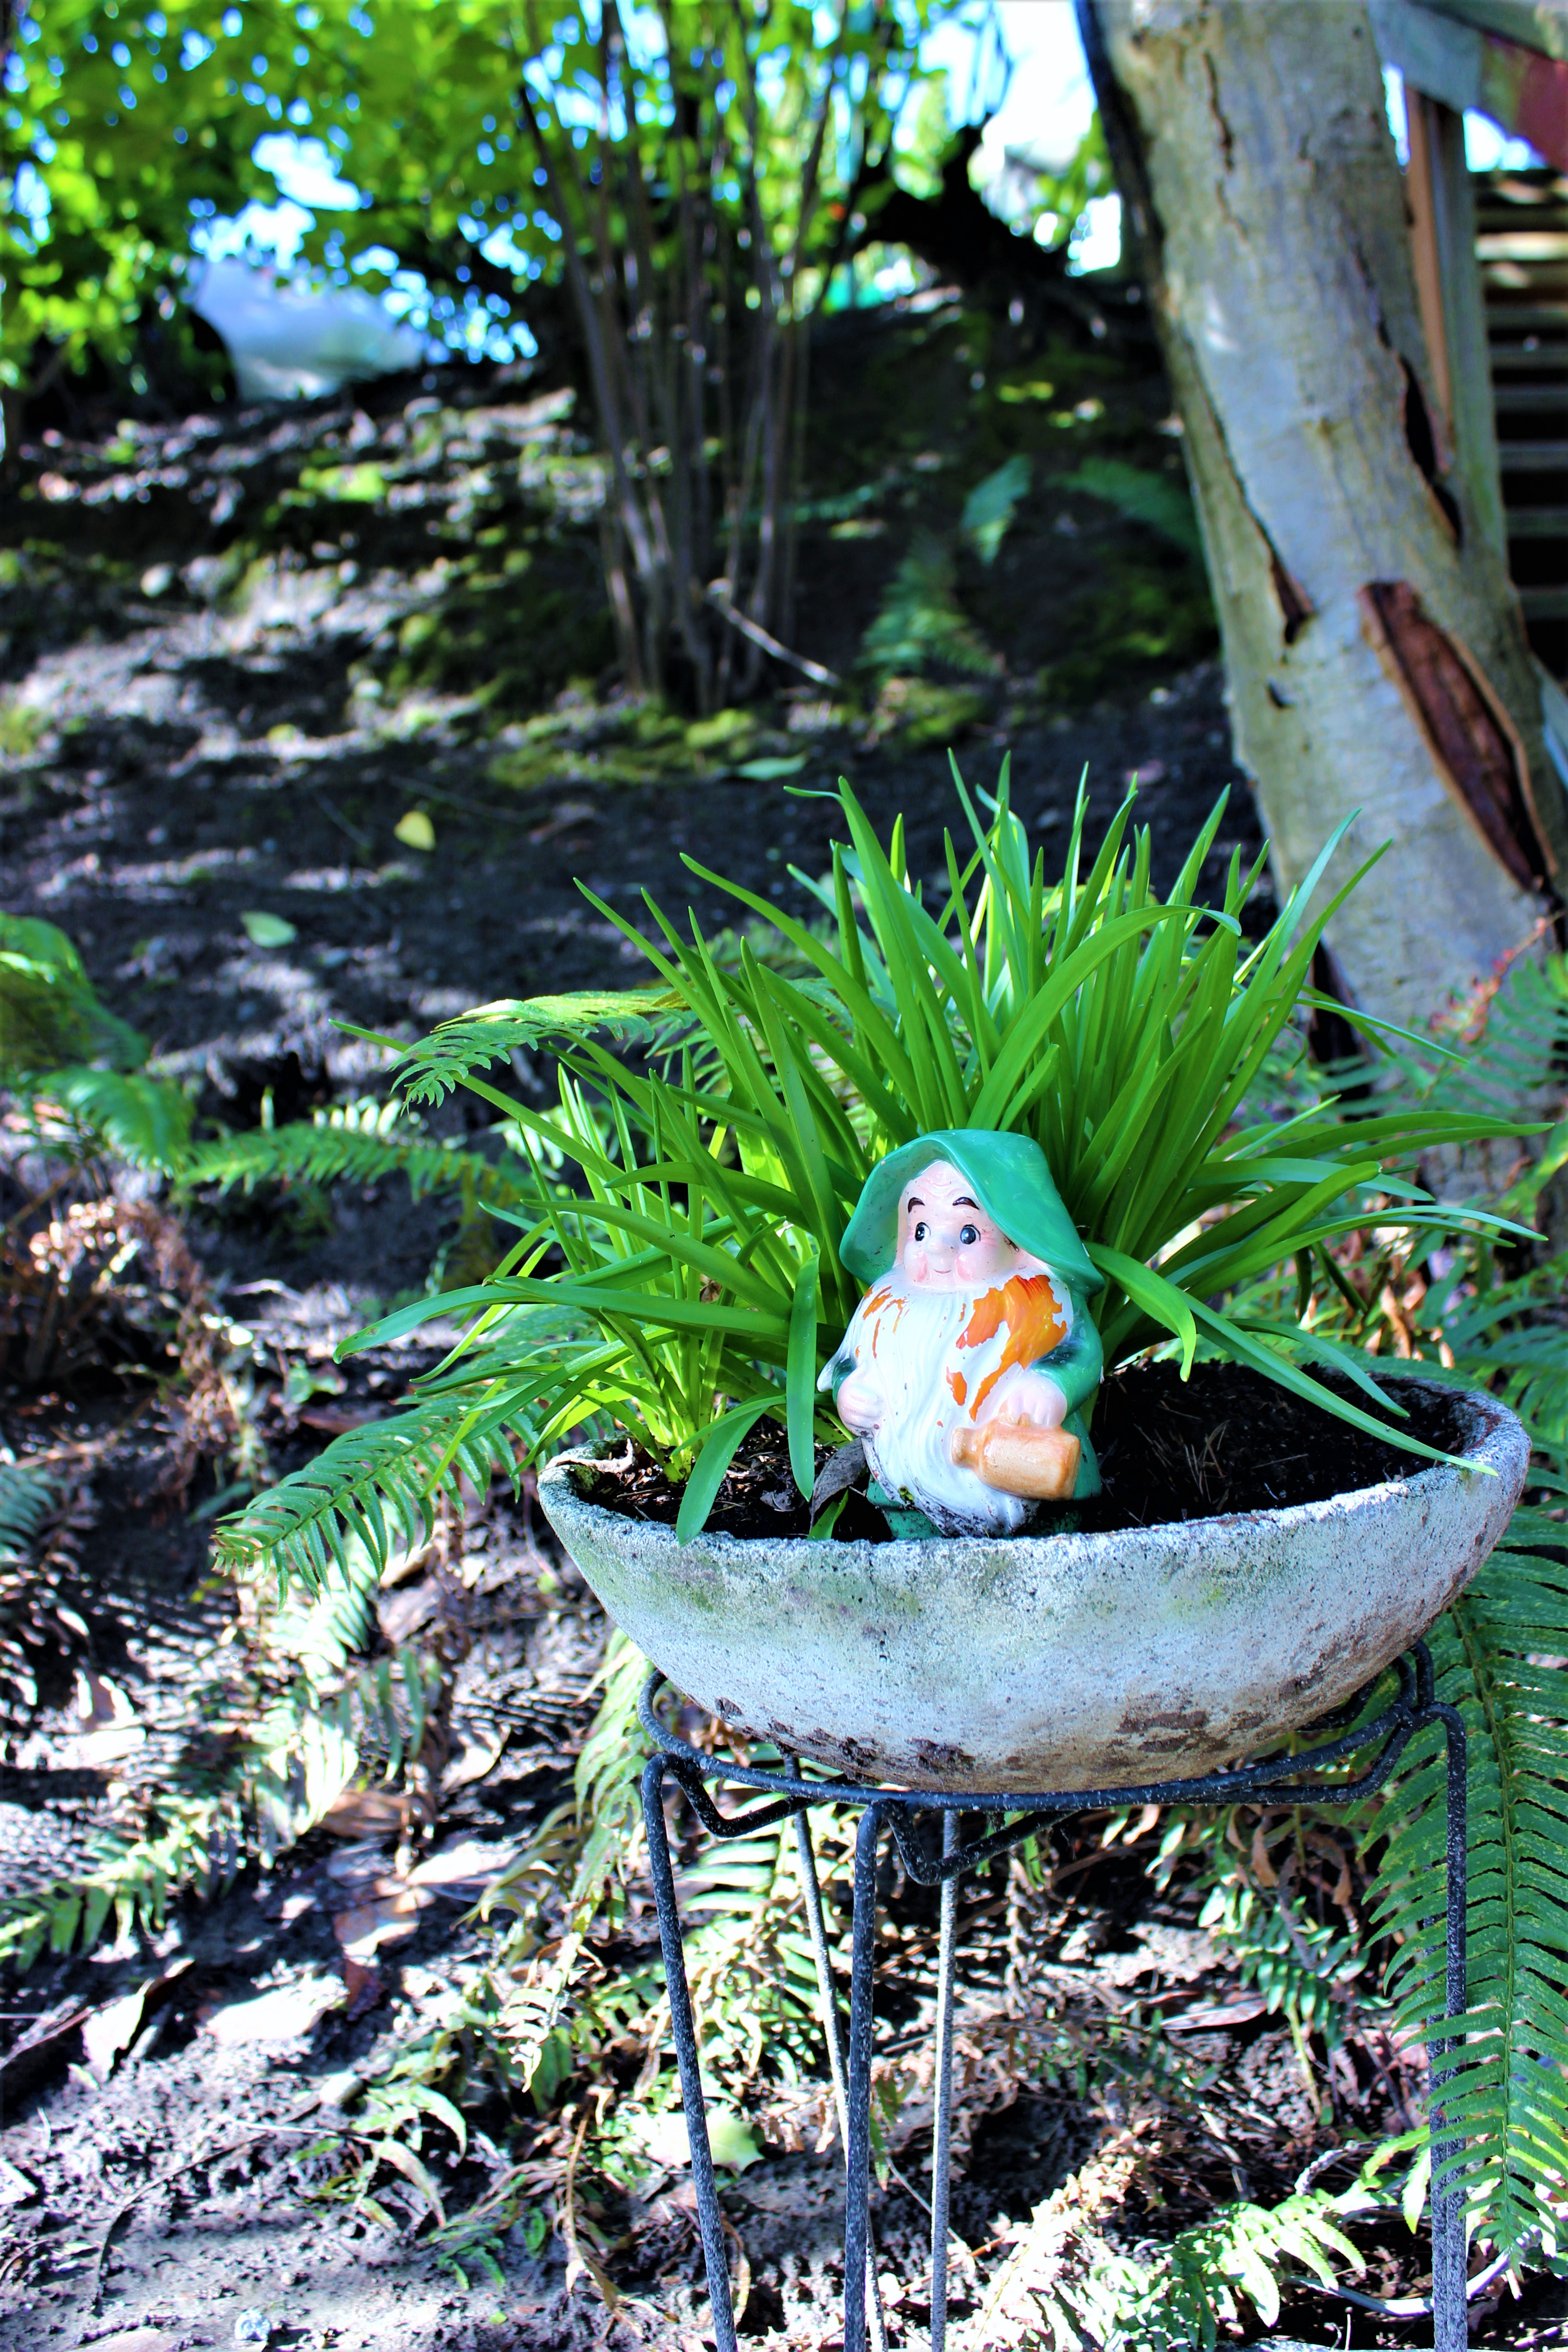 Mr. Pipps, the wee gnome, and the concrete planter were both partially buried in an overgrown garden (at an estate sale). When I expressed an interest, they just told me to dig it out and take it. So I did, flowers and all.